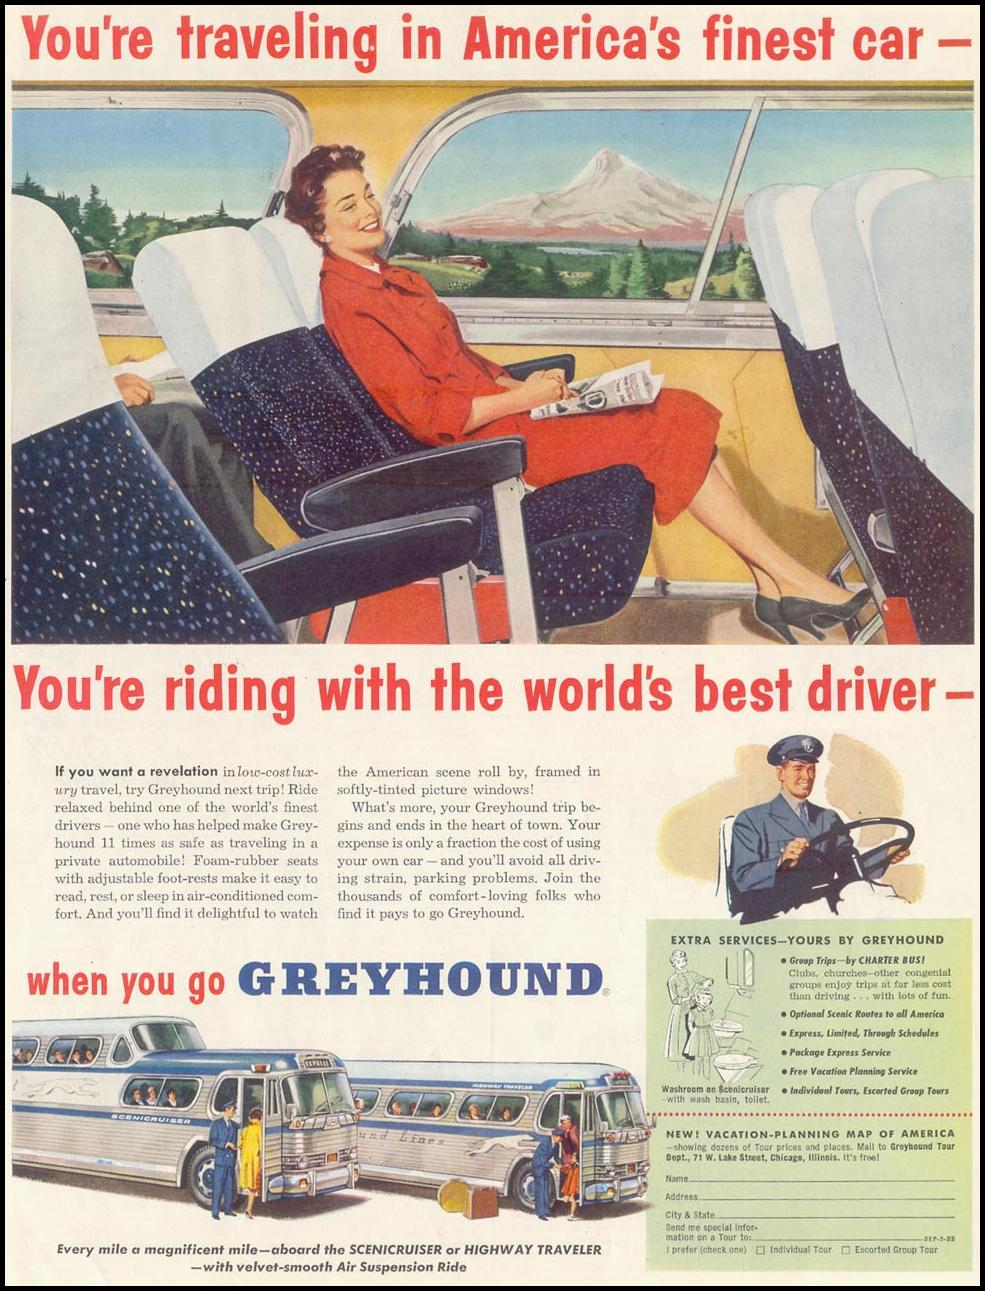 BUS TRAVEL SATURDAY EVENING POST 03/26/1955 p. 18